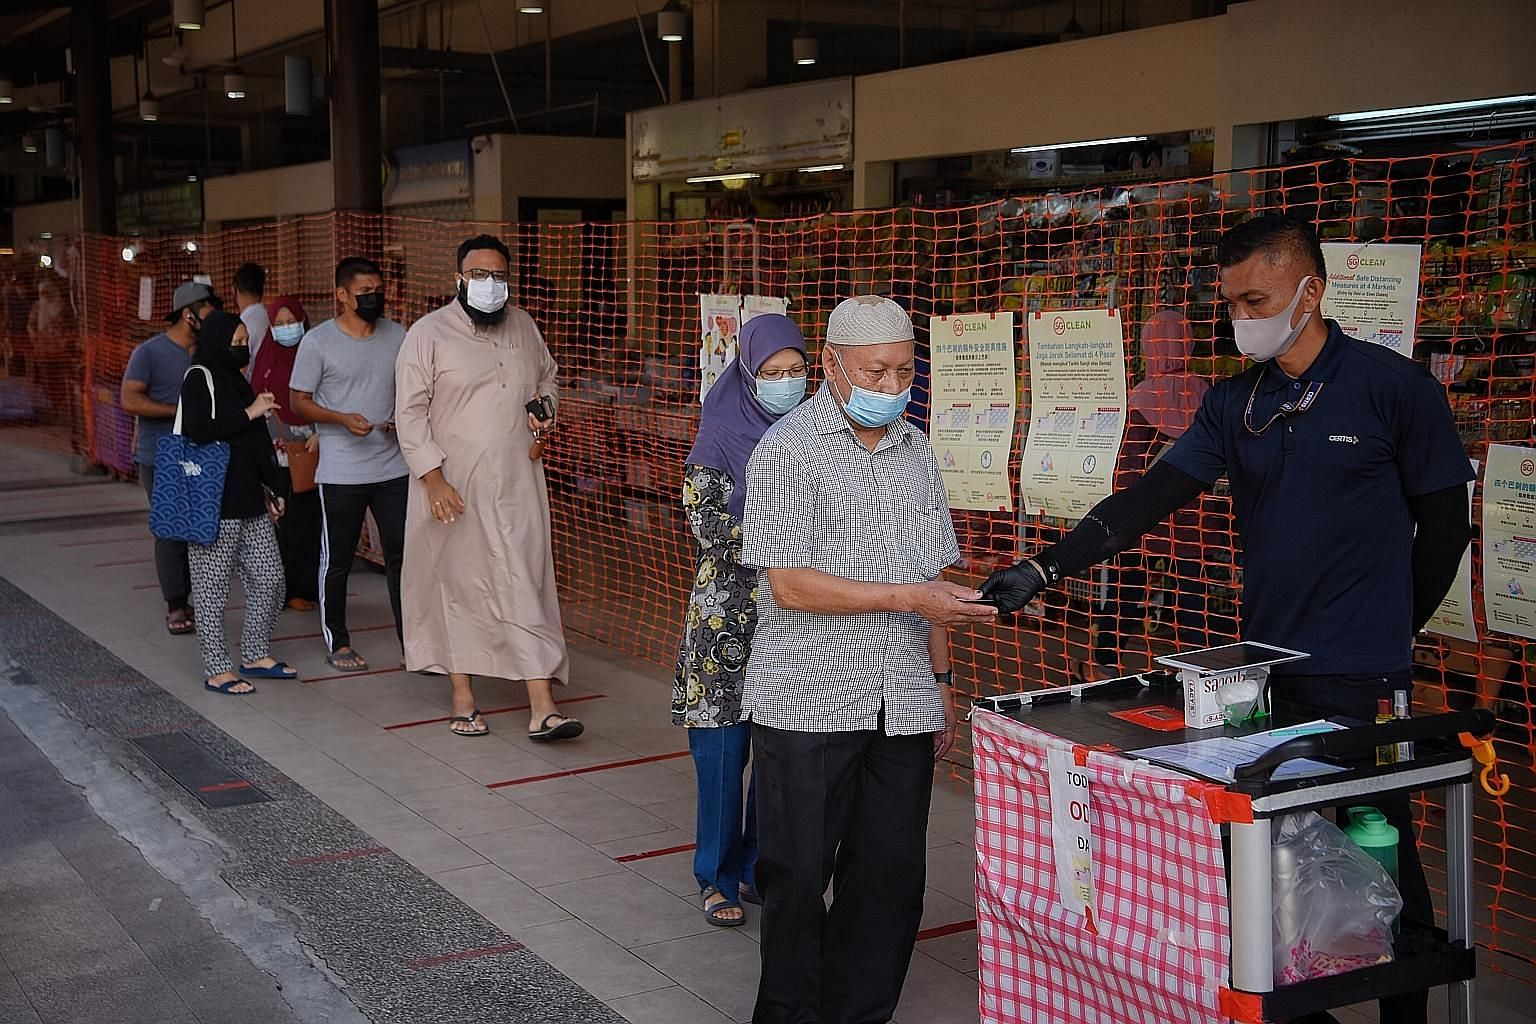 Shoppers getting their NRICs scanned at Geylang Serai Market. Currently, people can visit this market - and three others - only on alternate days, depending on the last digit of their NRIC number, but this rule will be lifted on weekdays from tomorro